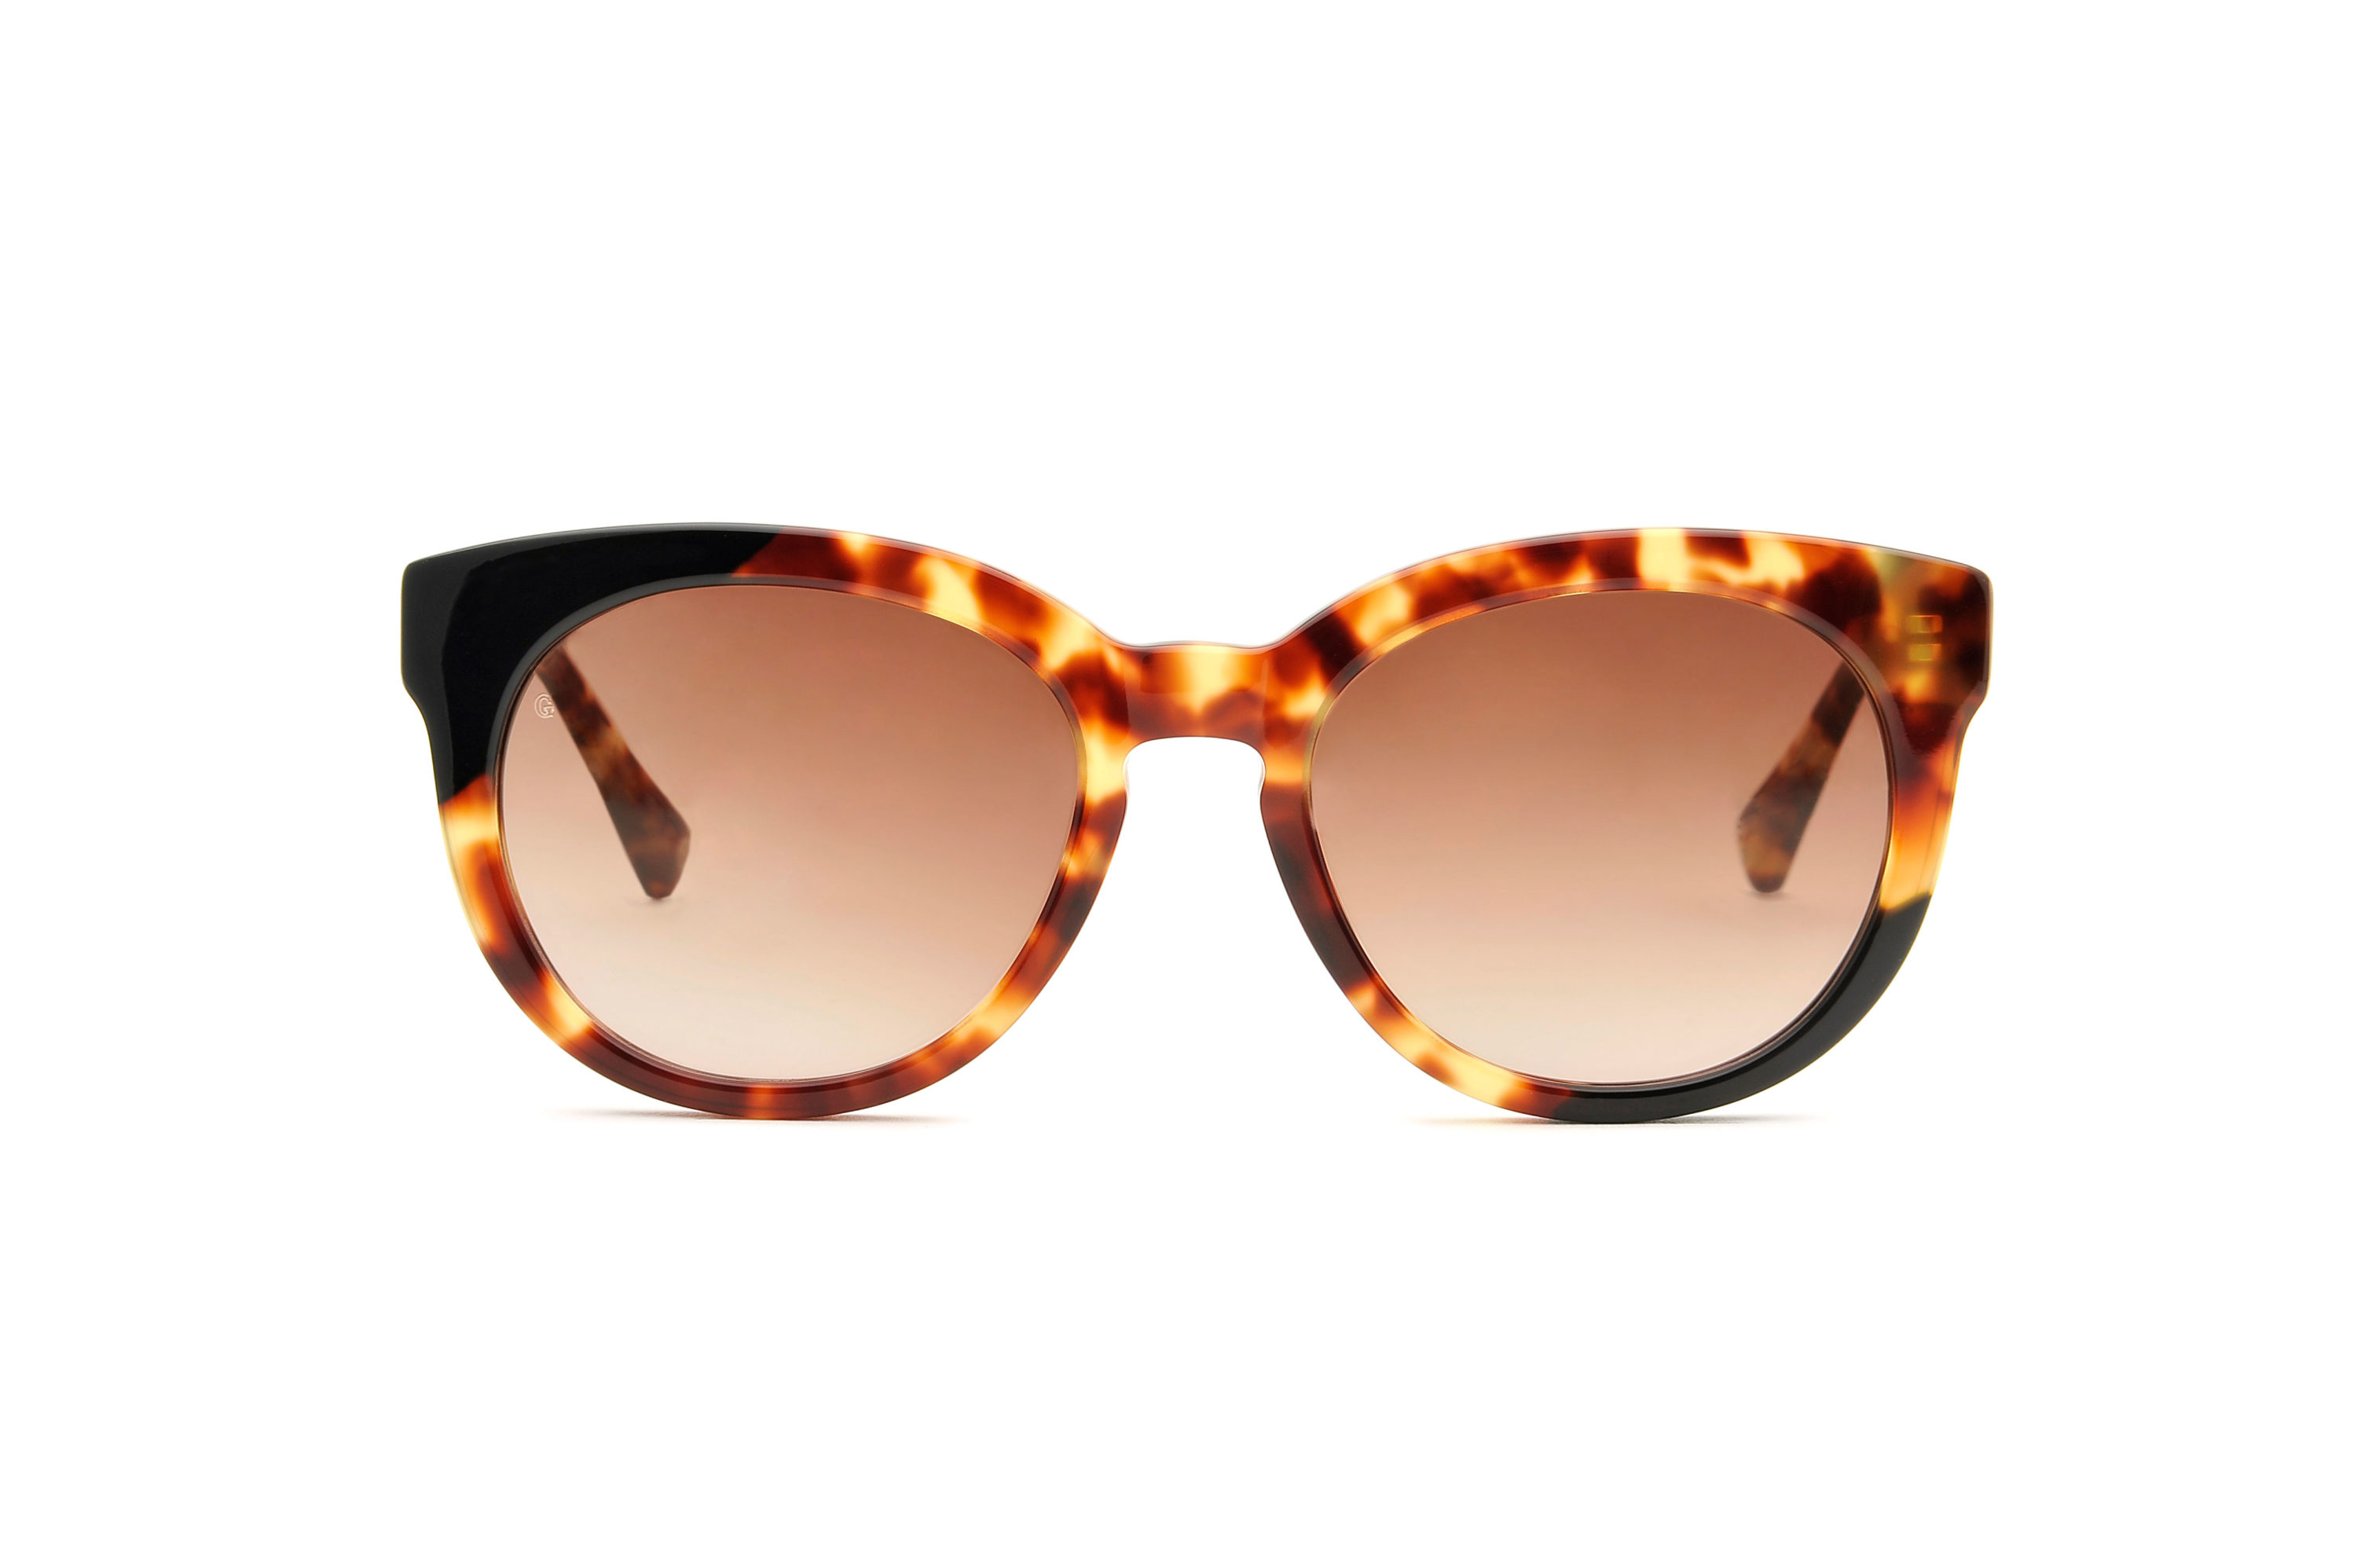 Marian acetate cat eye tortoise sunglasses by GIGI Studios